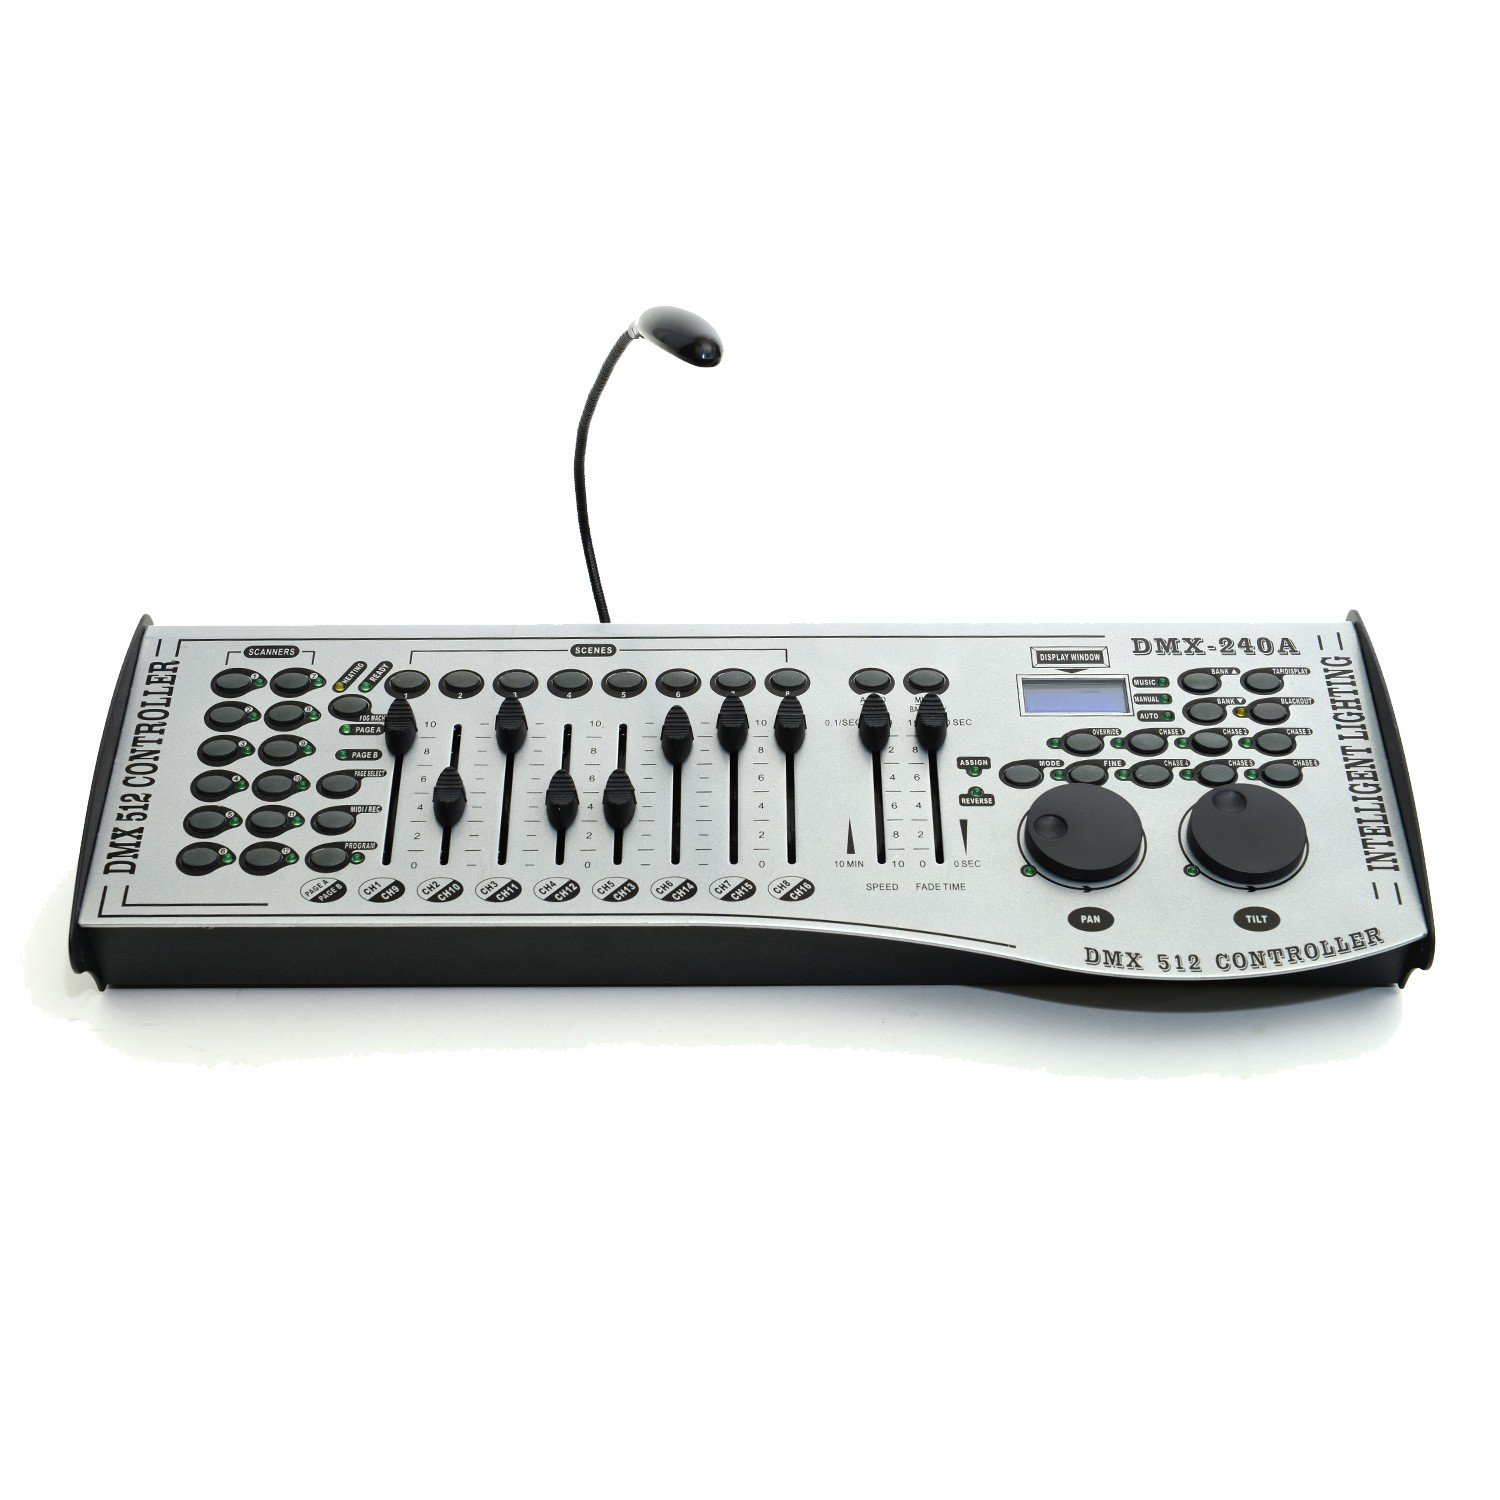 Dmx 512 Metallic Housing Controller 12 Lights 16 5 Pin Wiring Channels 240 Scenes For Stage Lighting Dj Lasers Moving Heads Par Musical